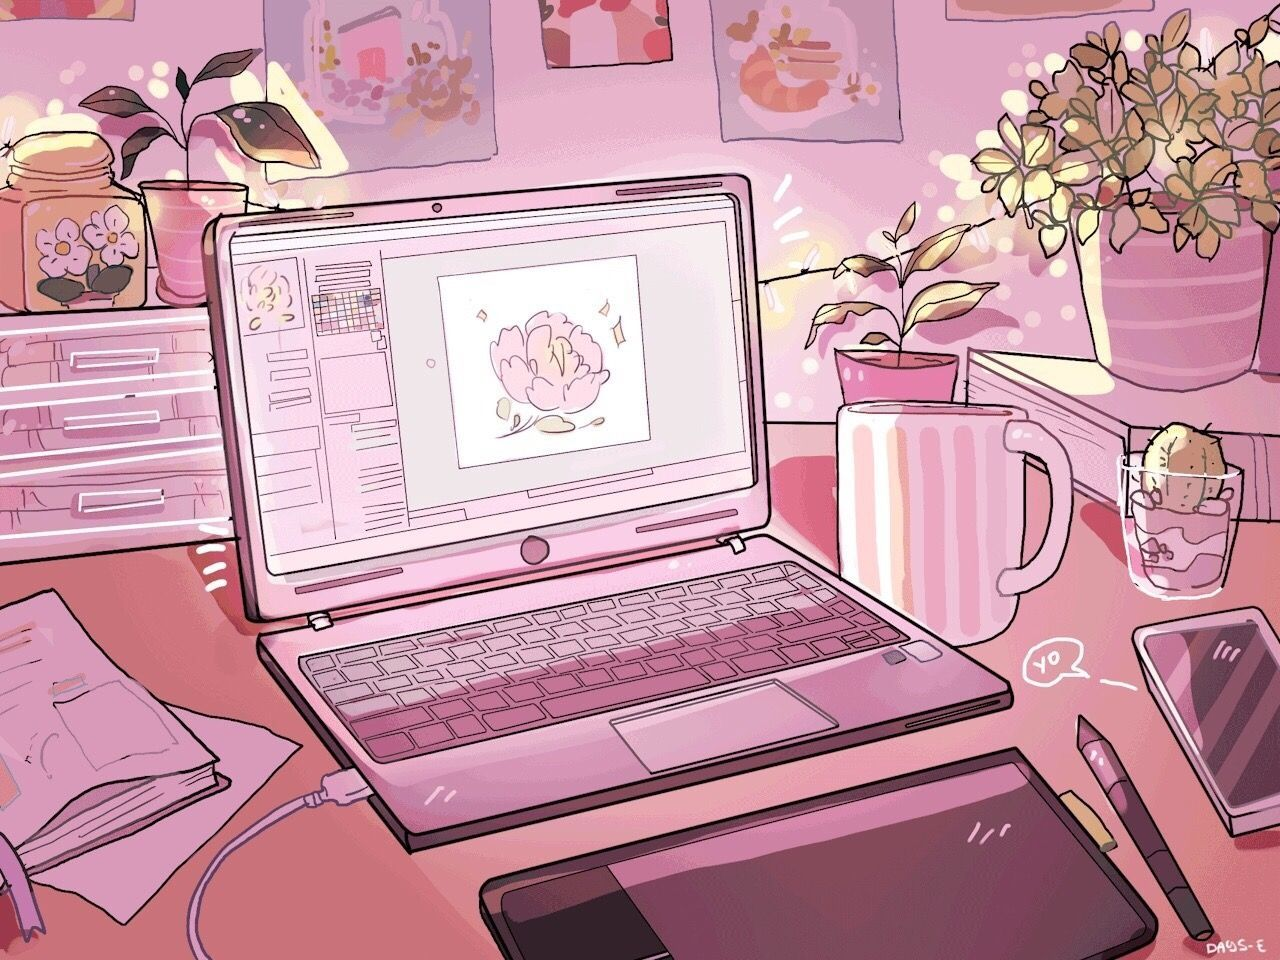 Aesthetic Laptop Pastel Pink Aesthetic Anime Scenery Wallpaper Aesthetic Anime